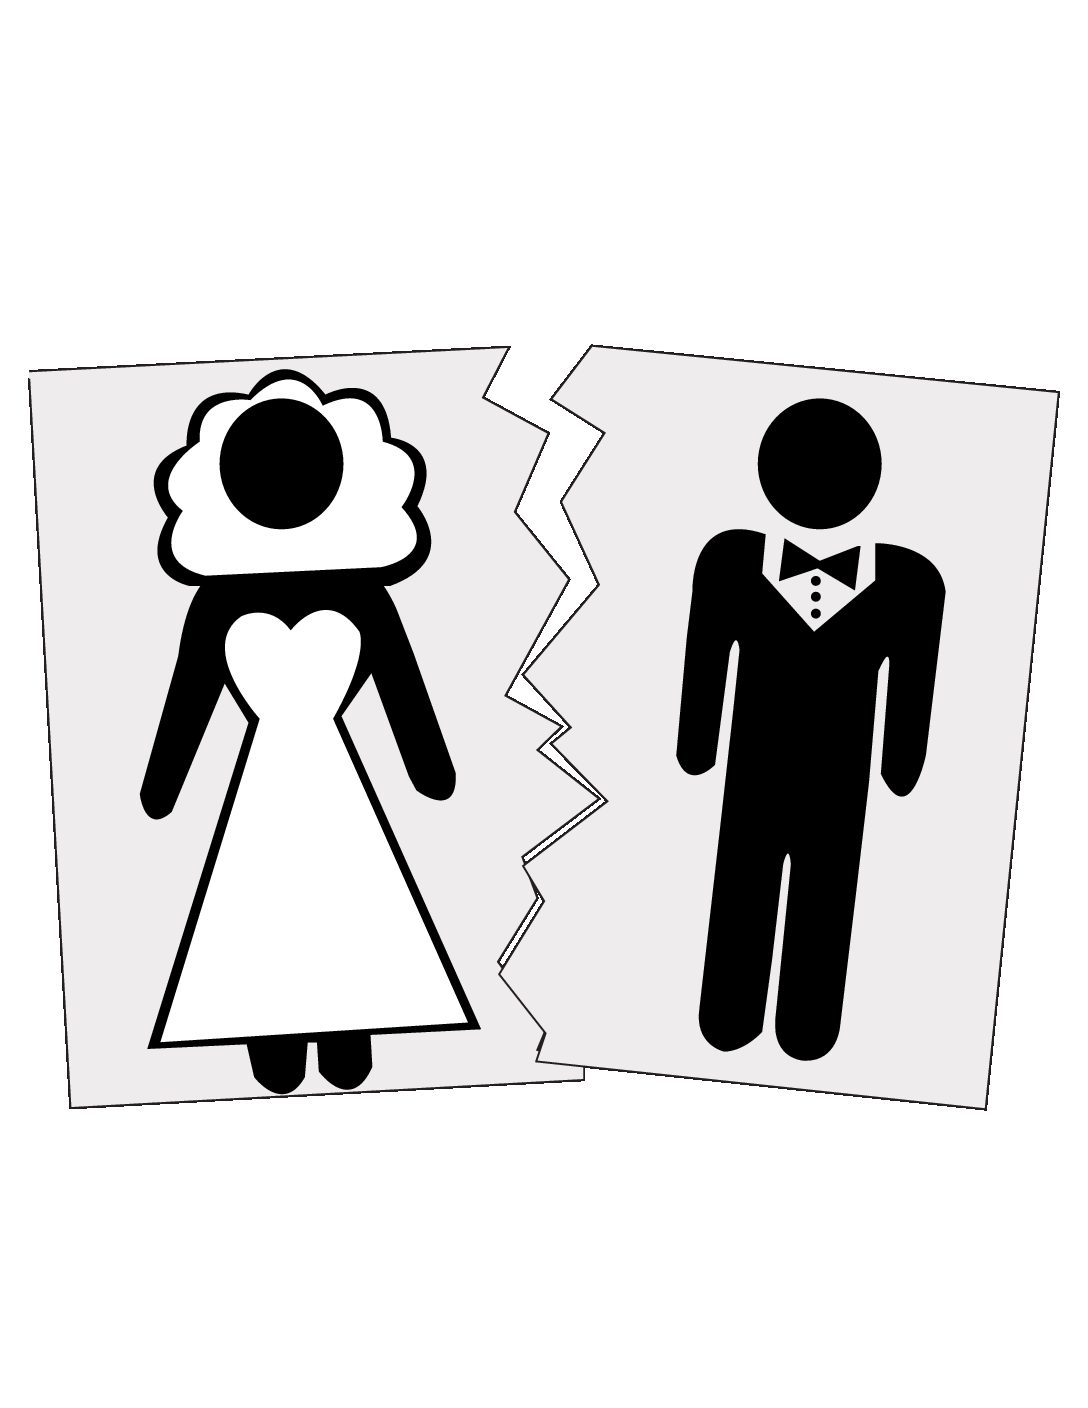 14 Days of Love Day 2: The Changing Divorce Rates